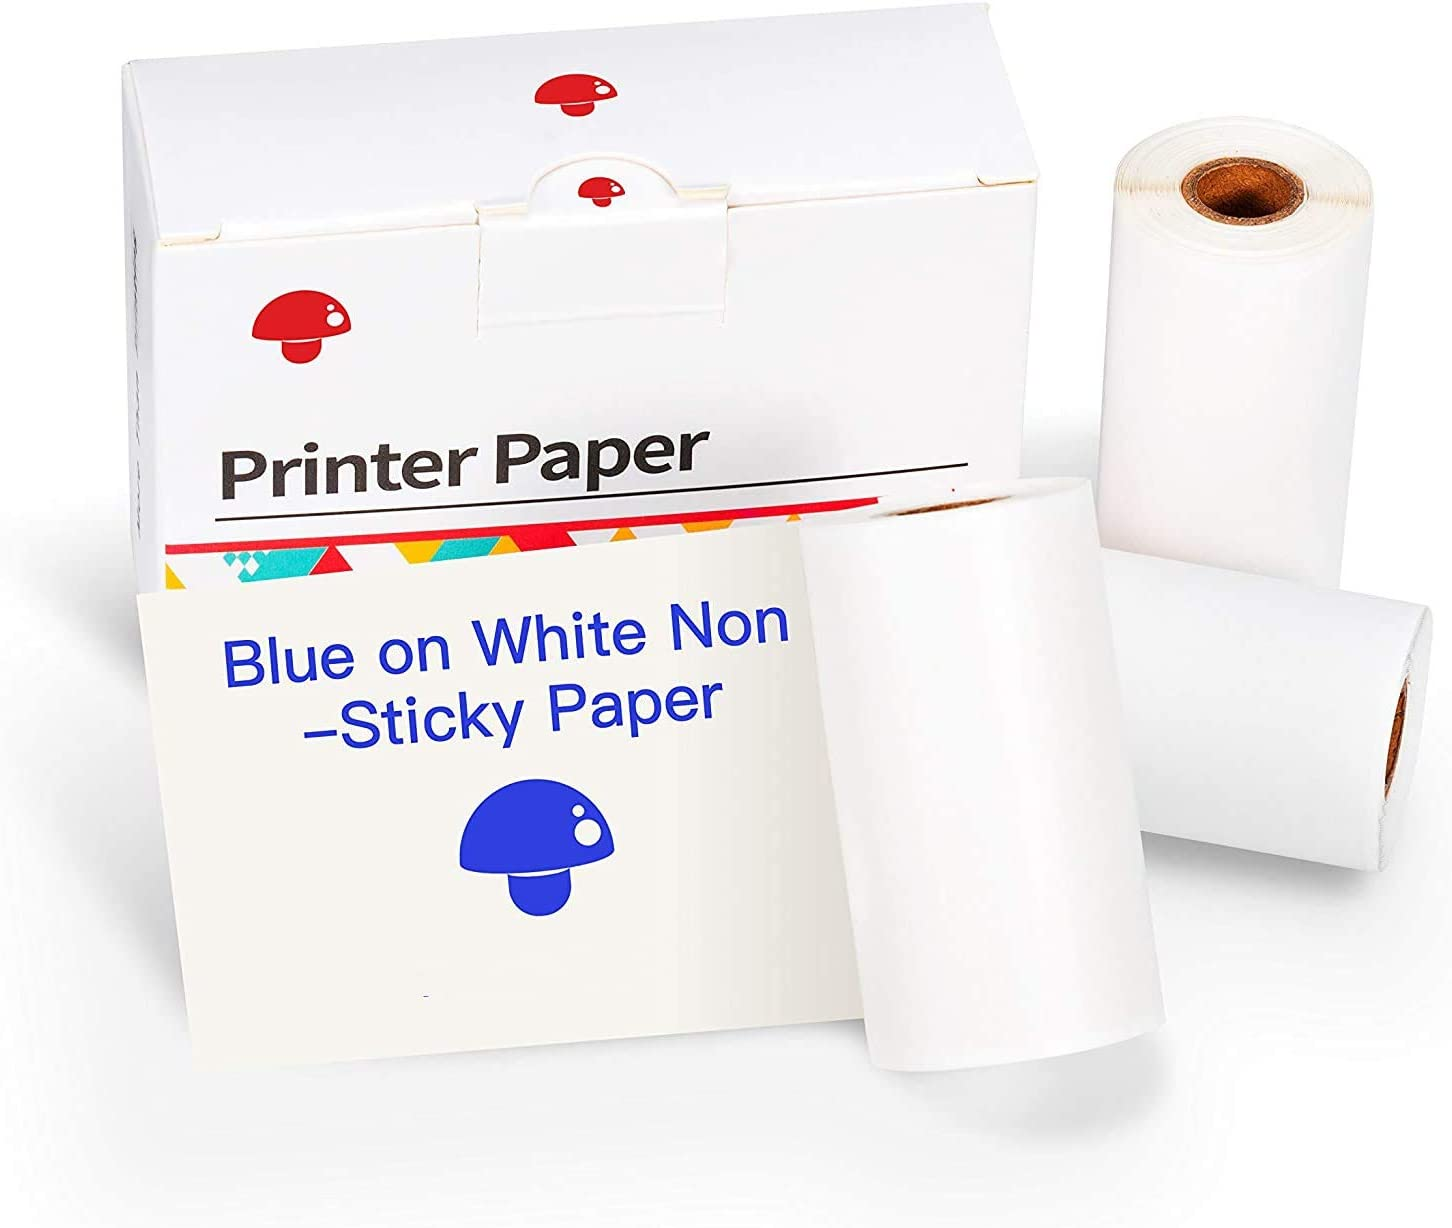 BESHENG Blue Image Self-Adhesive Thermal Paper 3 Rolls, Sticker Paper Self-Adhesive for BESHENG MO2S Portable Pocket Printer (Blue Character on White, Diameter 30mm, 53mm x 3m, Storage Time 5 Years)